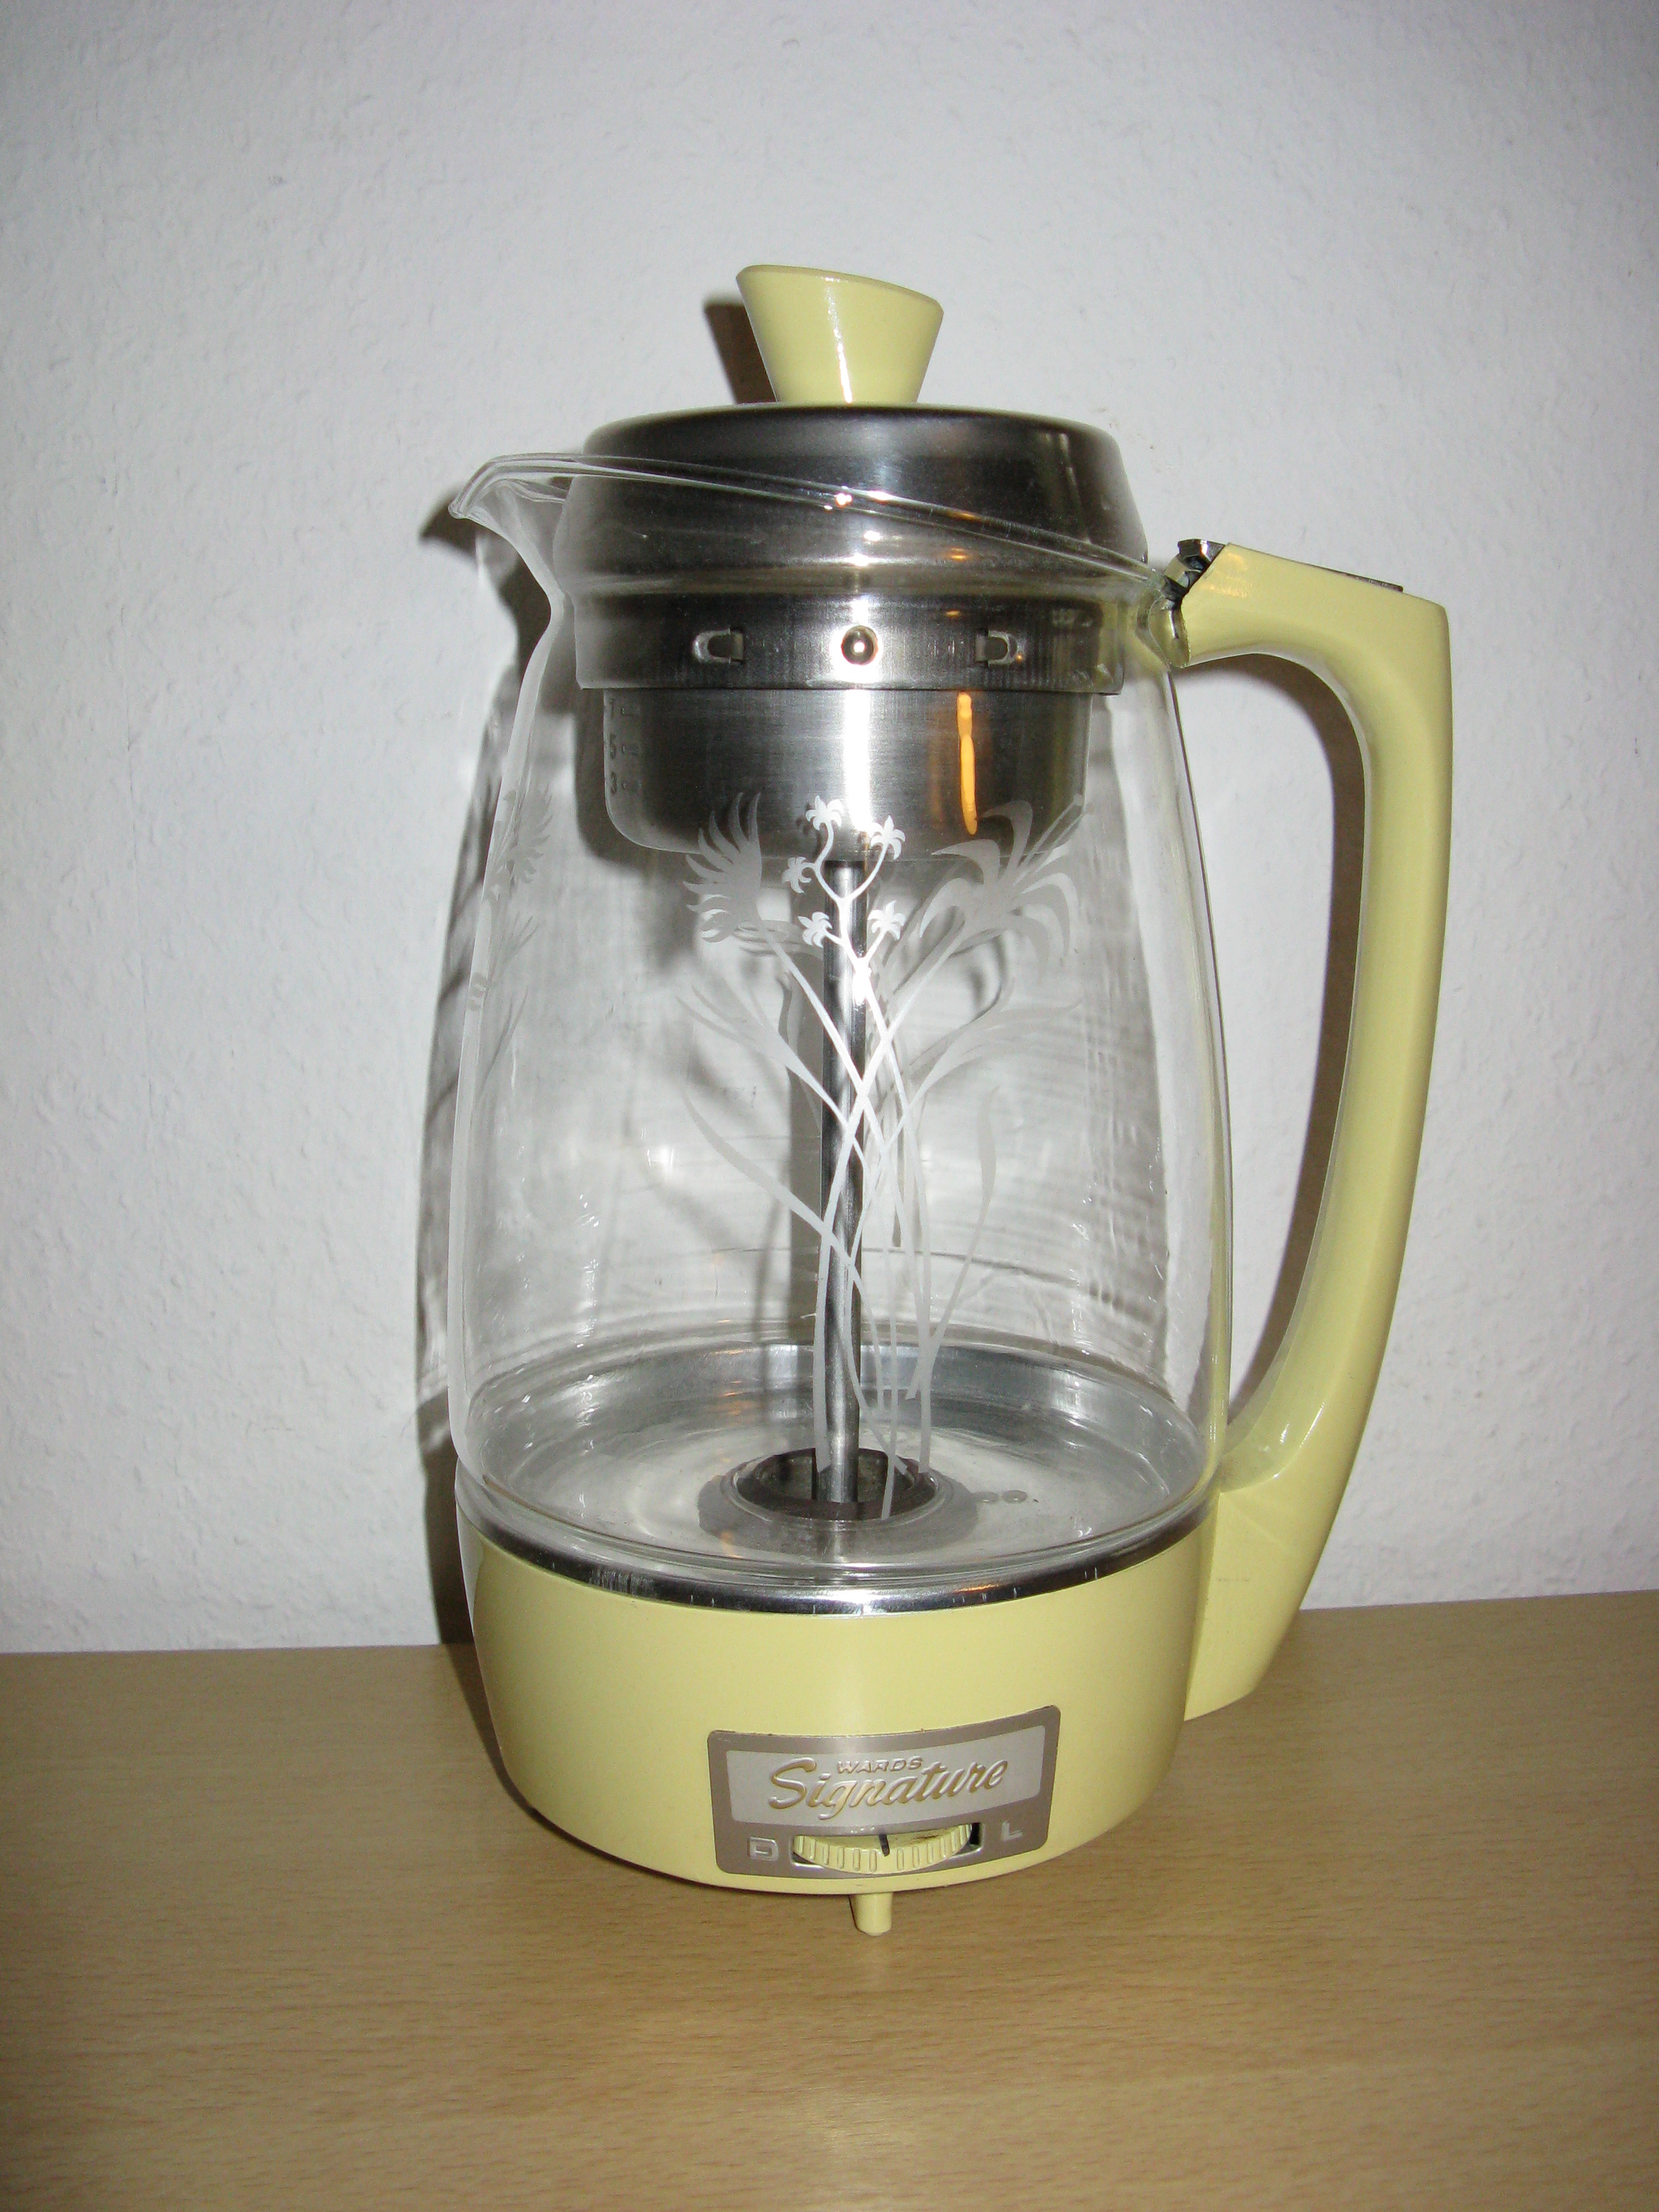 Kaffeefilter English File Percolator Usa Um 1950 Jpg Wikimedia Commons